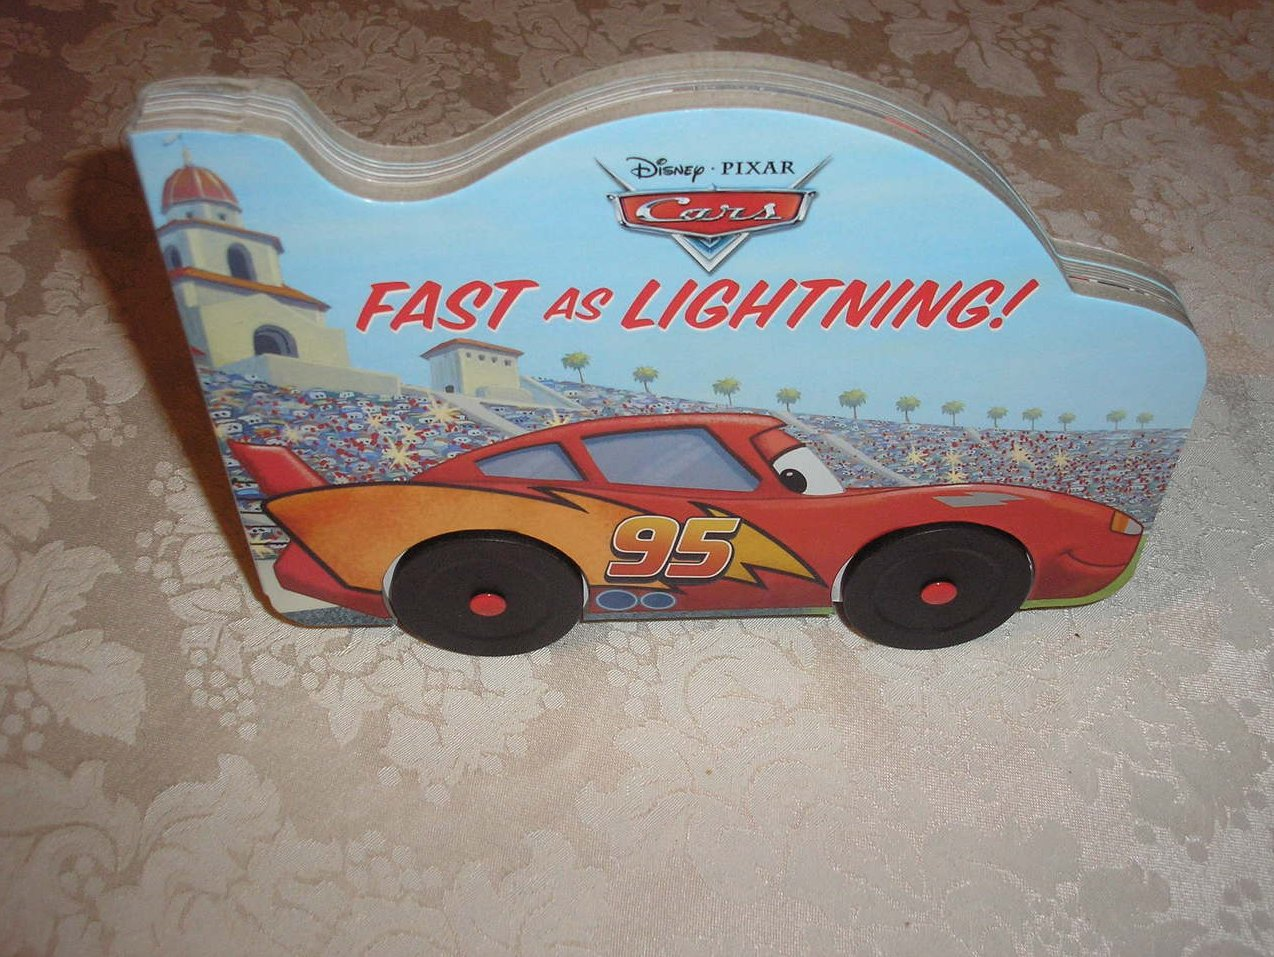 Disney Pixar Cars Fast As Lightning! brand new board book with wheels